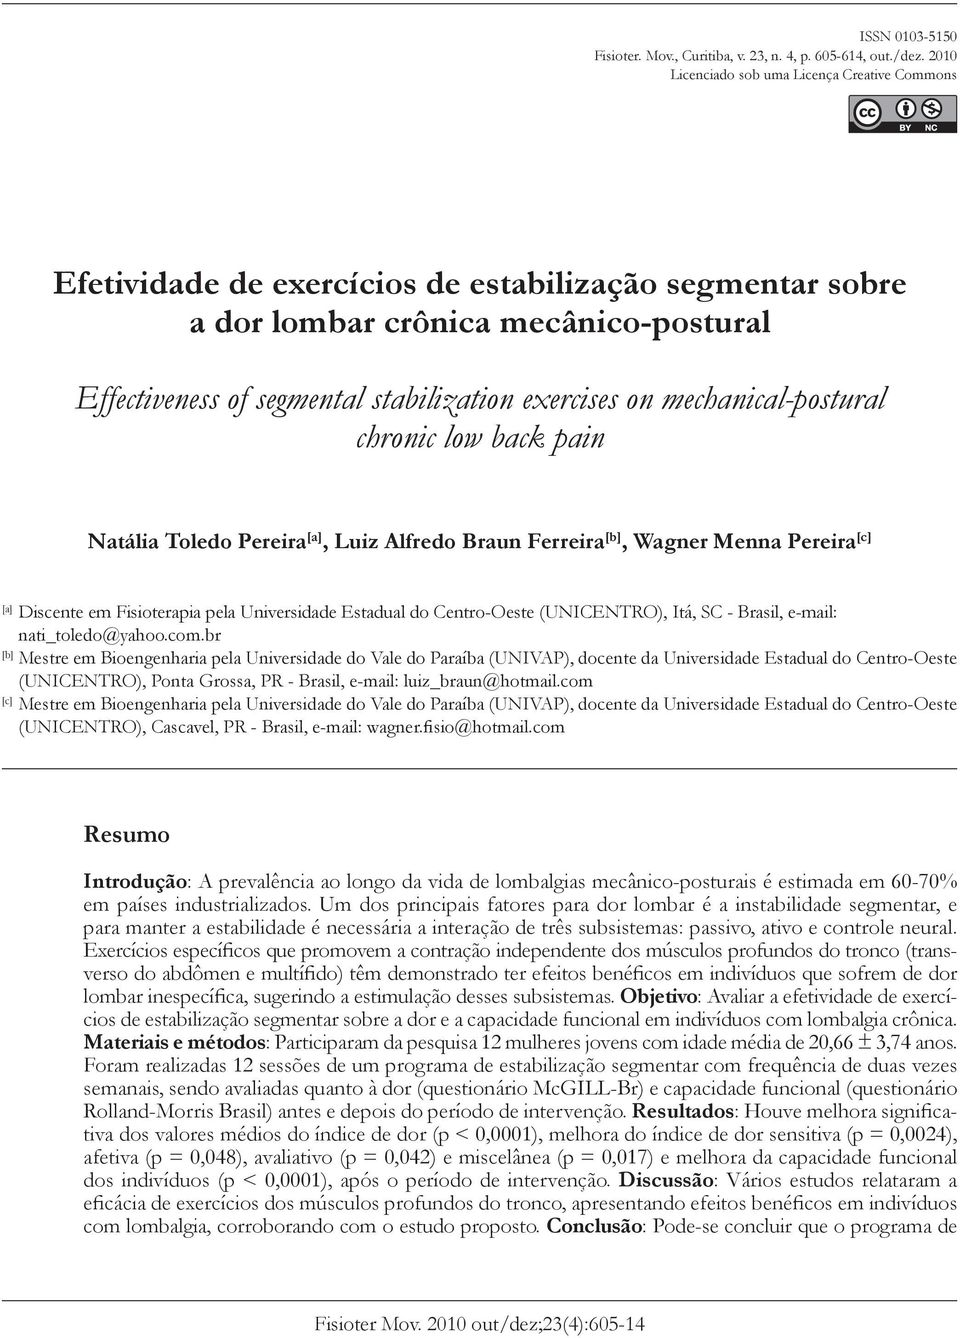 exercises on mechanical-postural chronic low back pain [A] Natália Toledo Pereira [a], Luiz Alfredo Braun Ferreira [b], Wagner Menna Pereira [c] [a] Discente em Fisioterapia pela Universidade